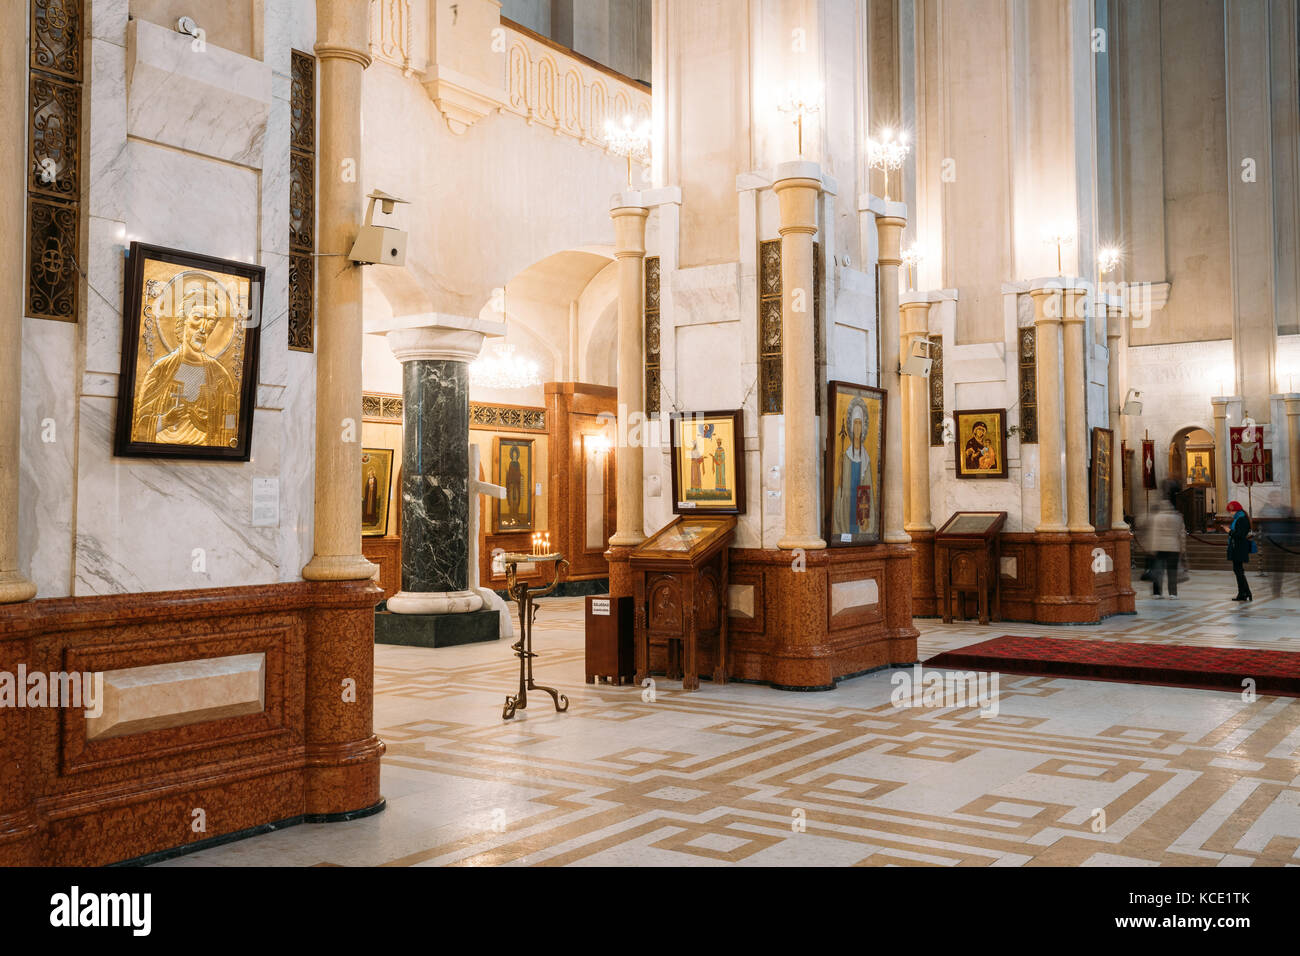 georgian architecture interior stock photos amp georgian